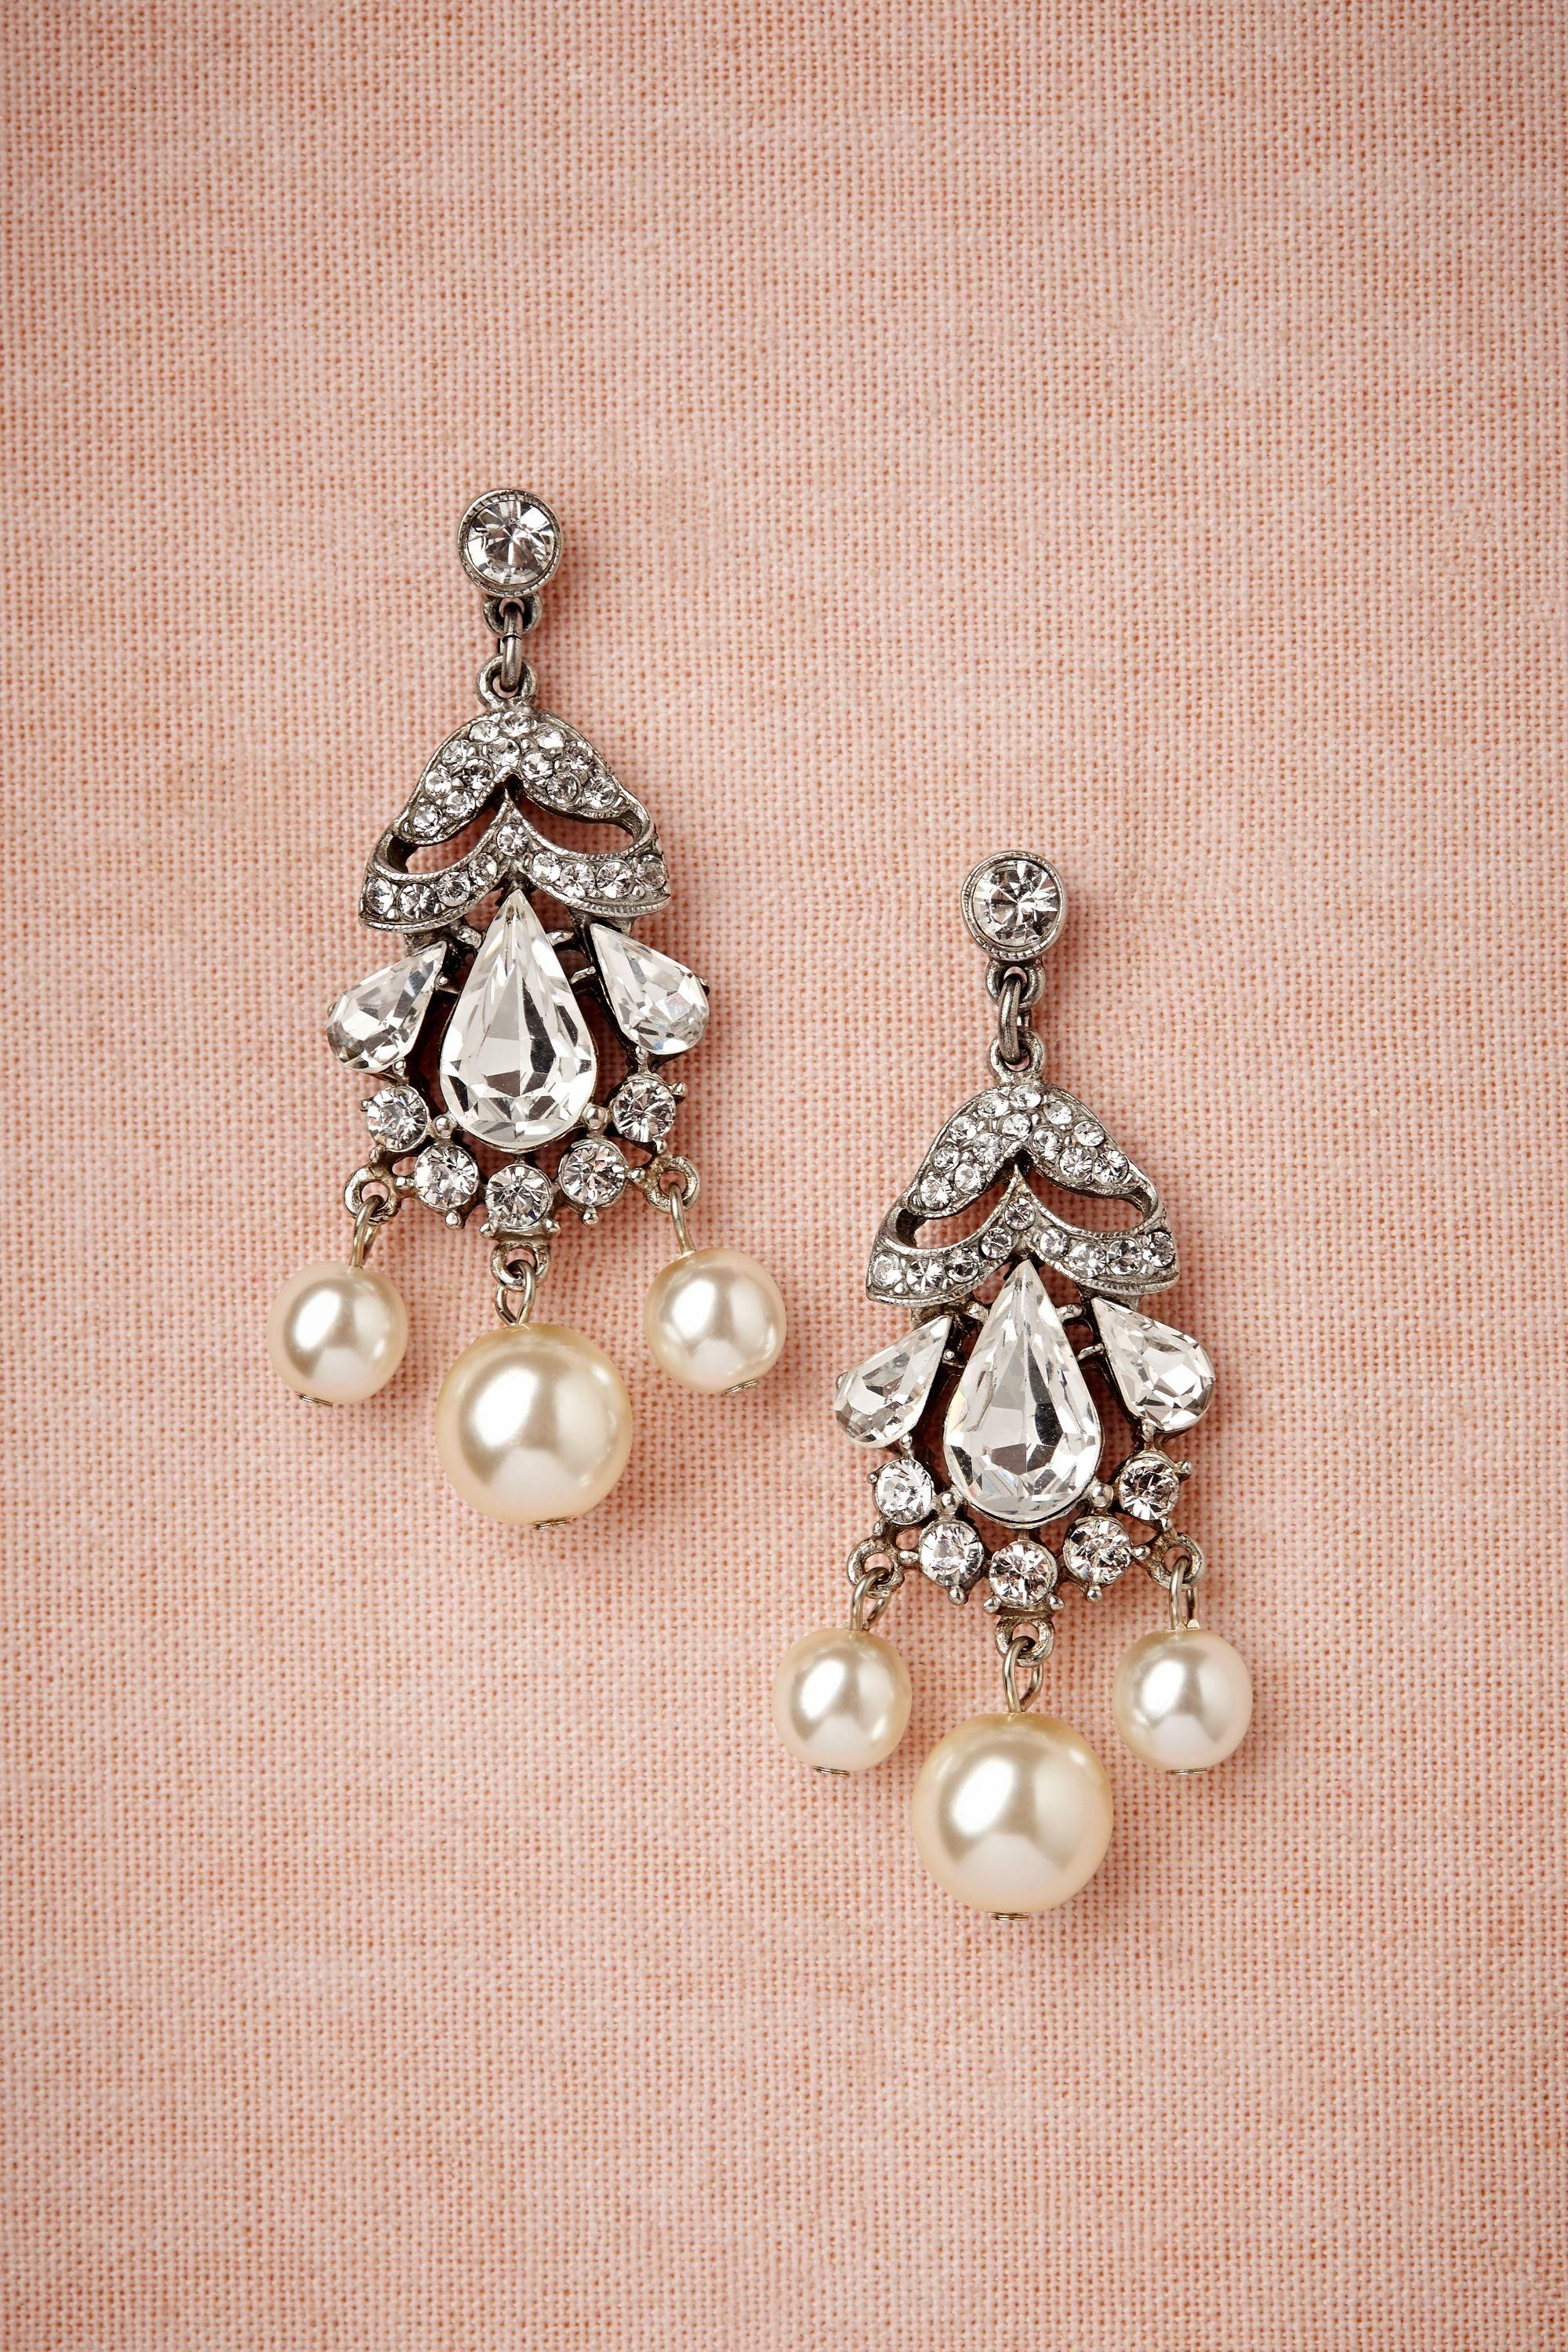 Vintage Pearl + Diamond Earrings Bhldn